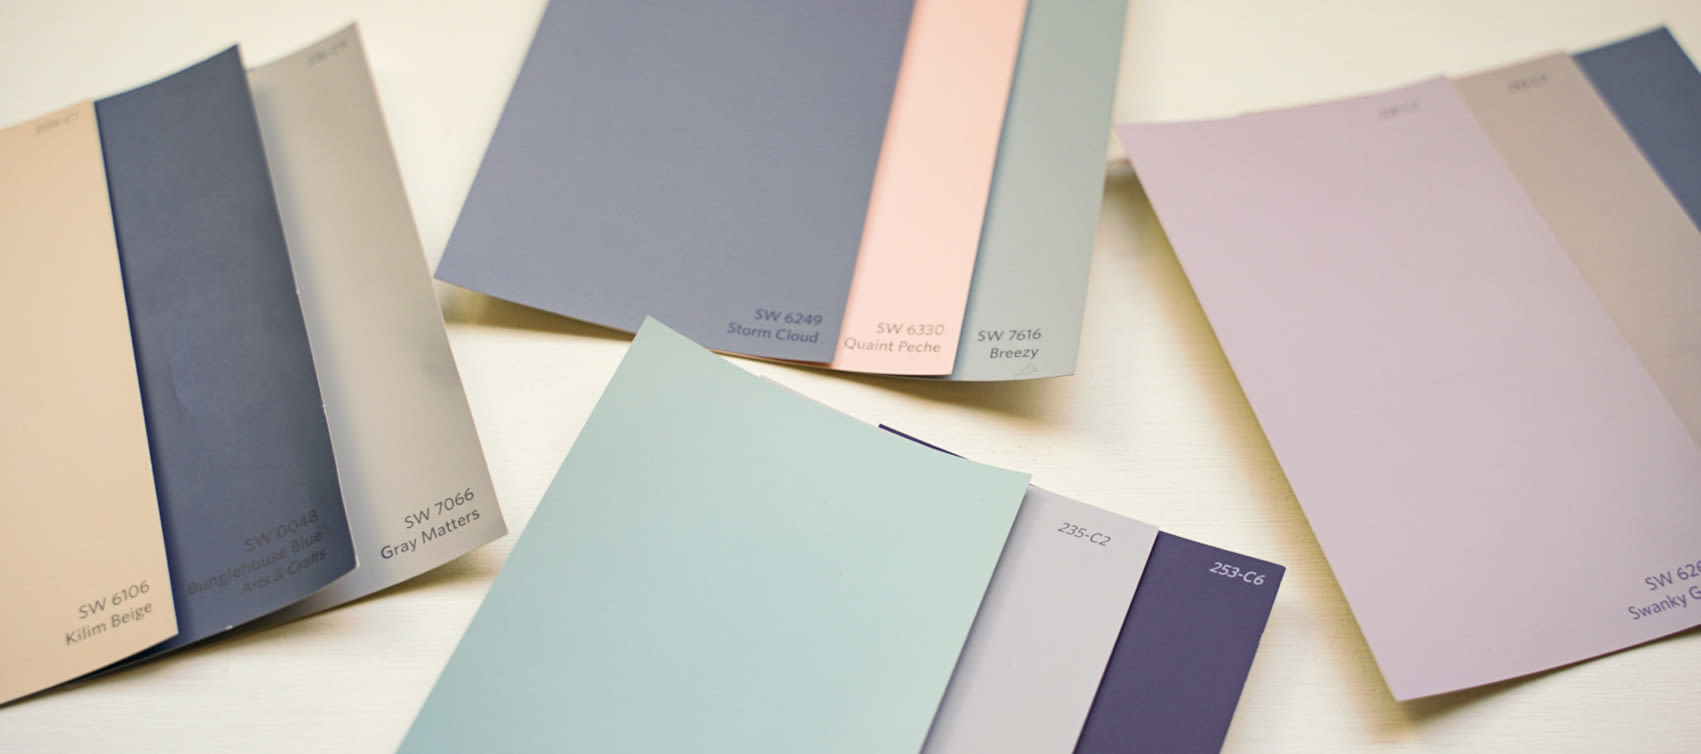 Paint Swatches at Hidden Hills Condominium Rentals in Laguna Niguel